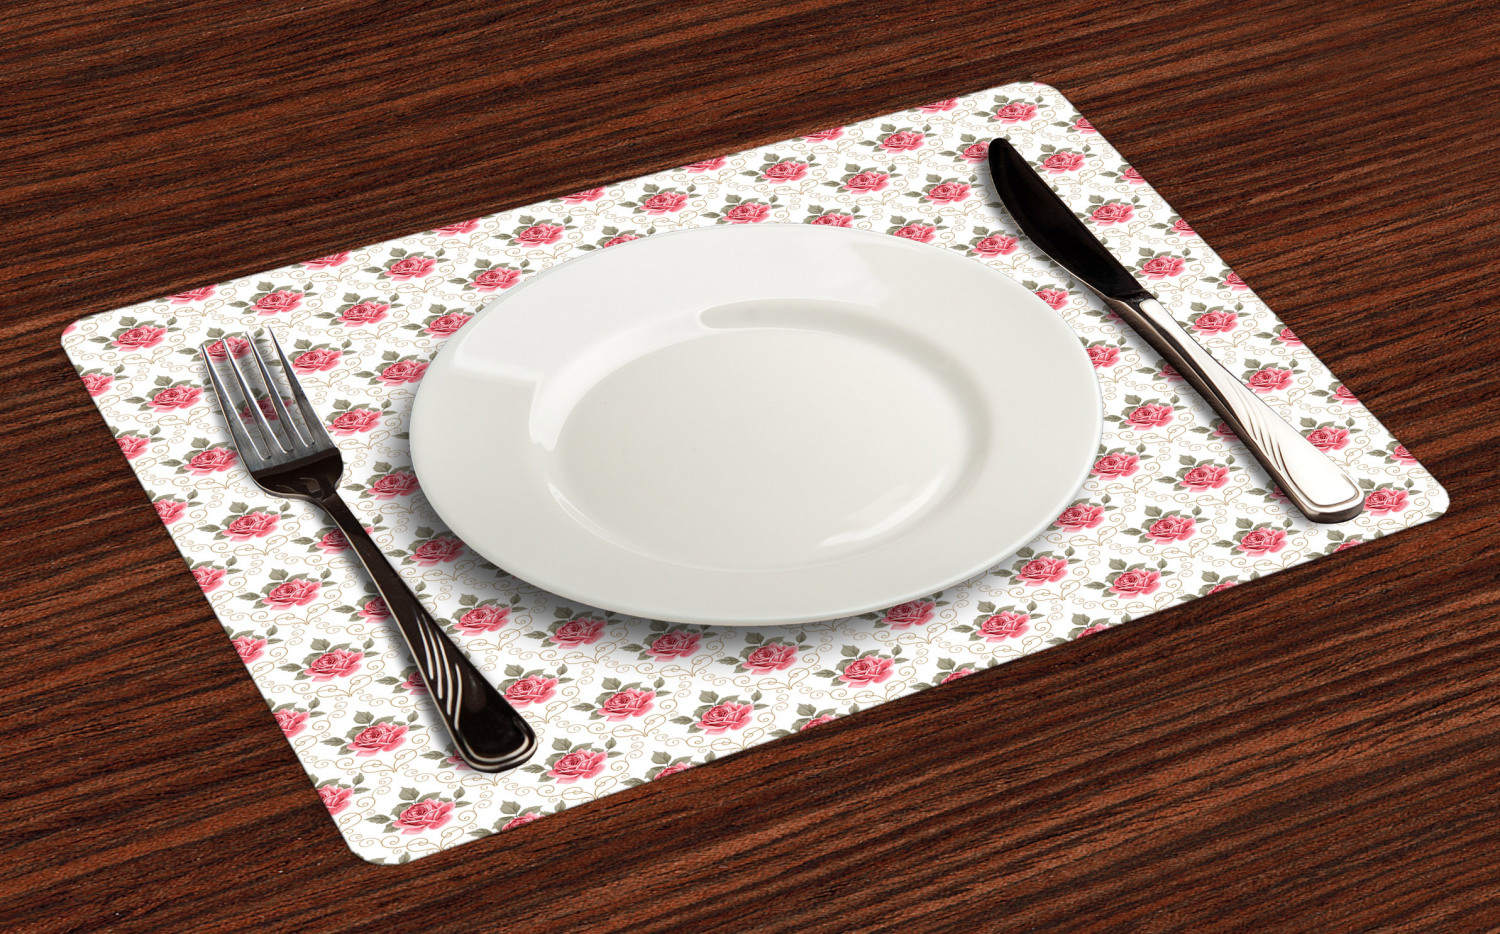 Ambesonne-Flower-Pattern-Placemat-Set-of-4-Fabric-Place-Mats-for-Table-Decor thumbnail 77